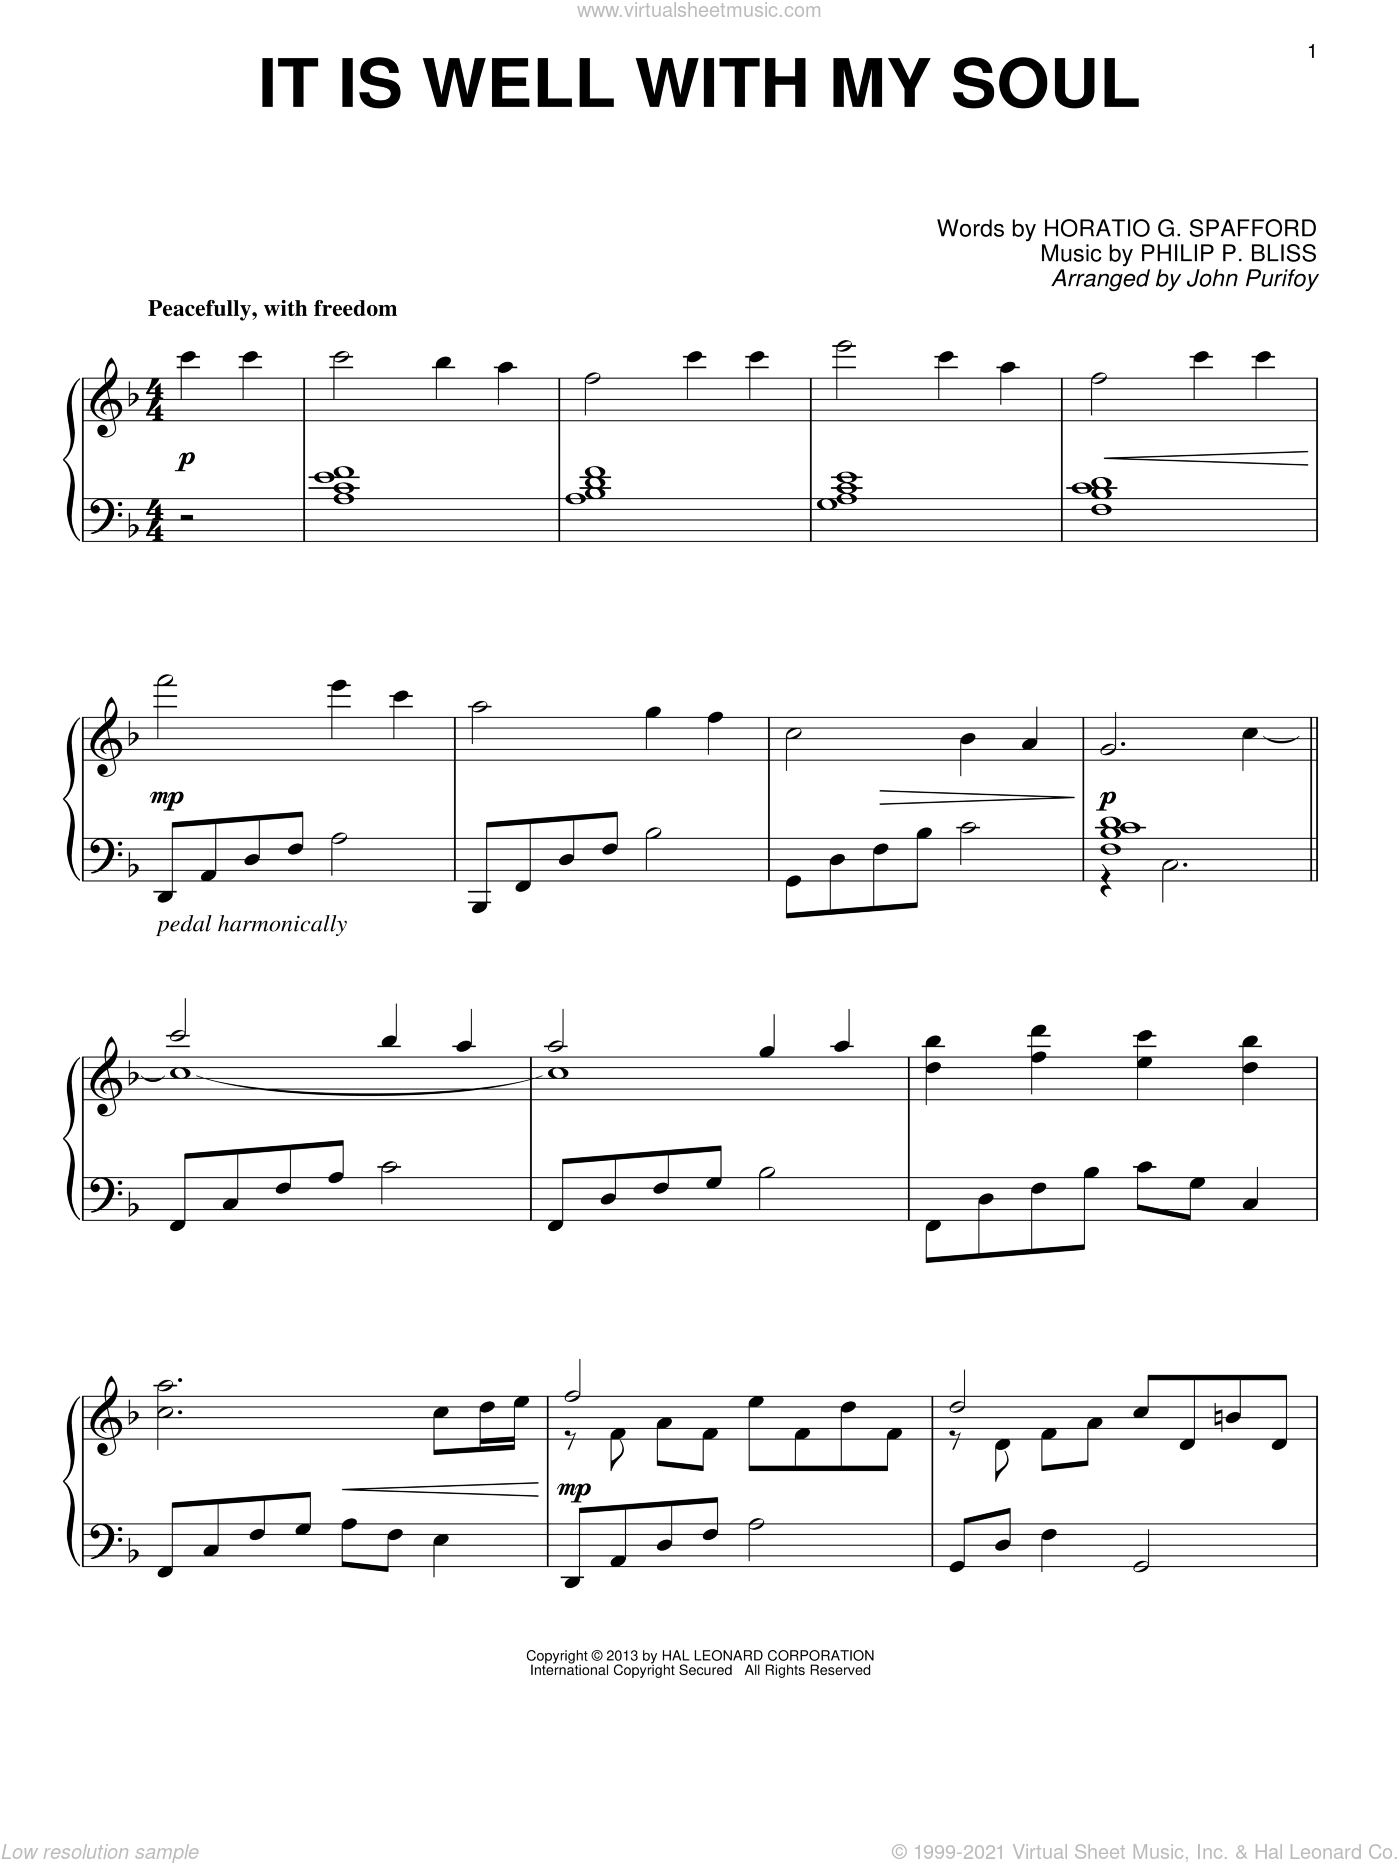 It Is Well With My Soul sheet music for piano solo by John Purifoy, Horatio G. Spafford and Philip P. Bliss, intermediate skill level